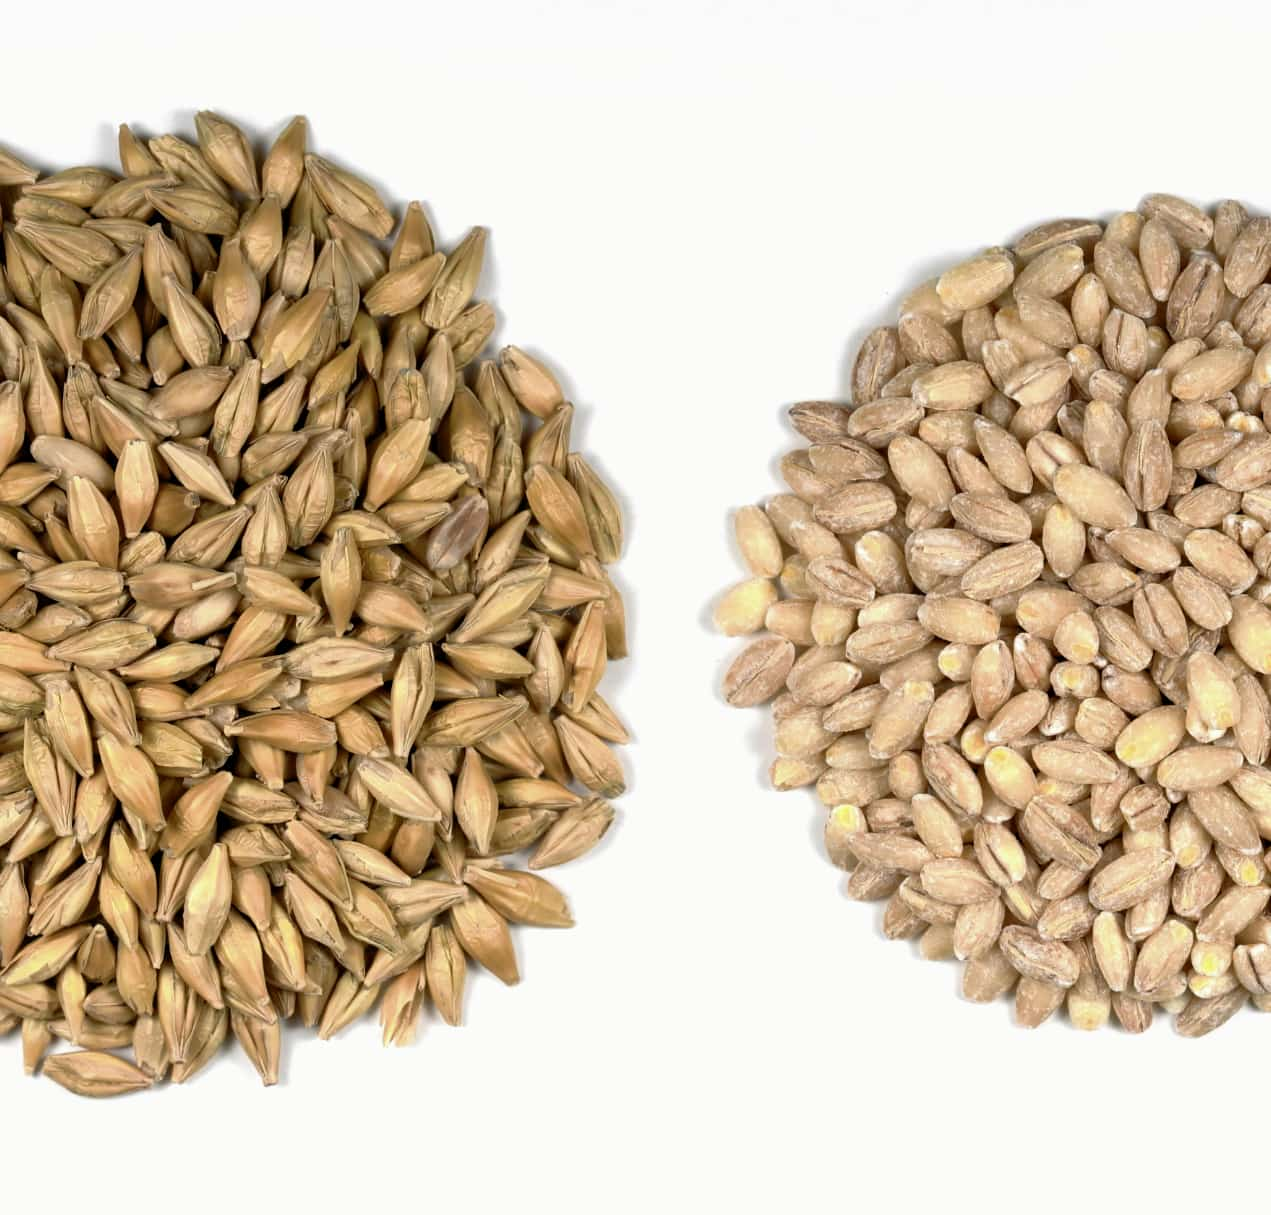 image of barley